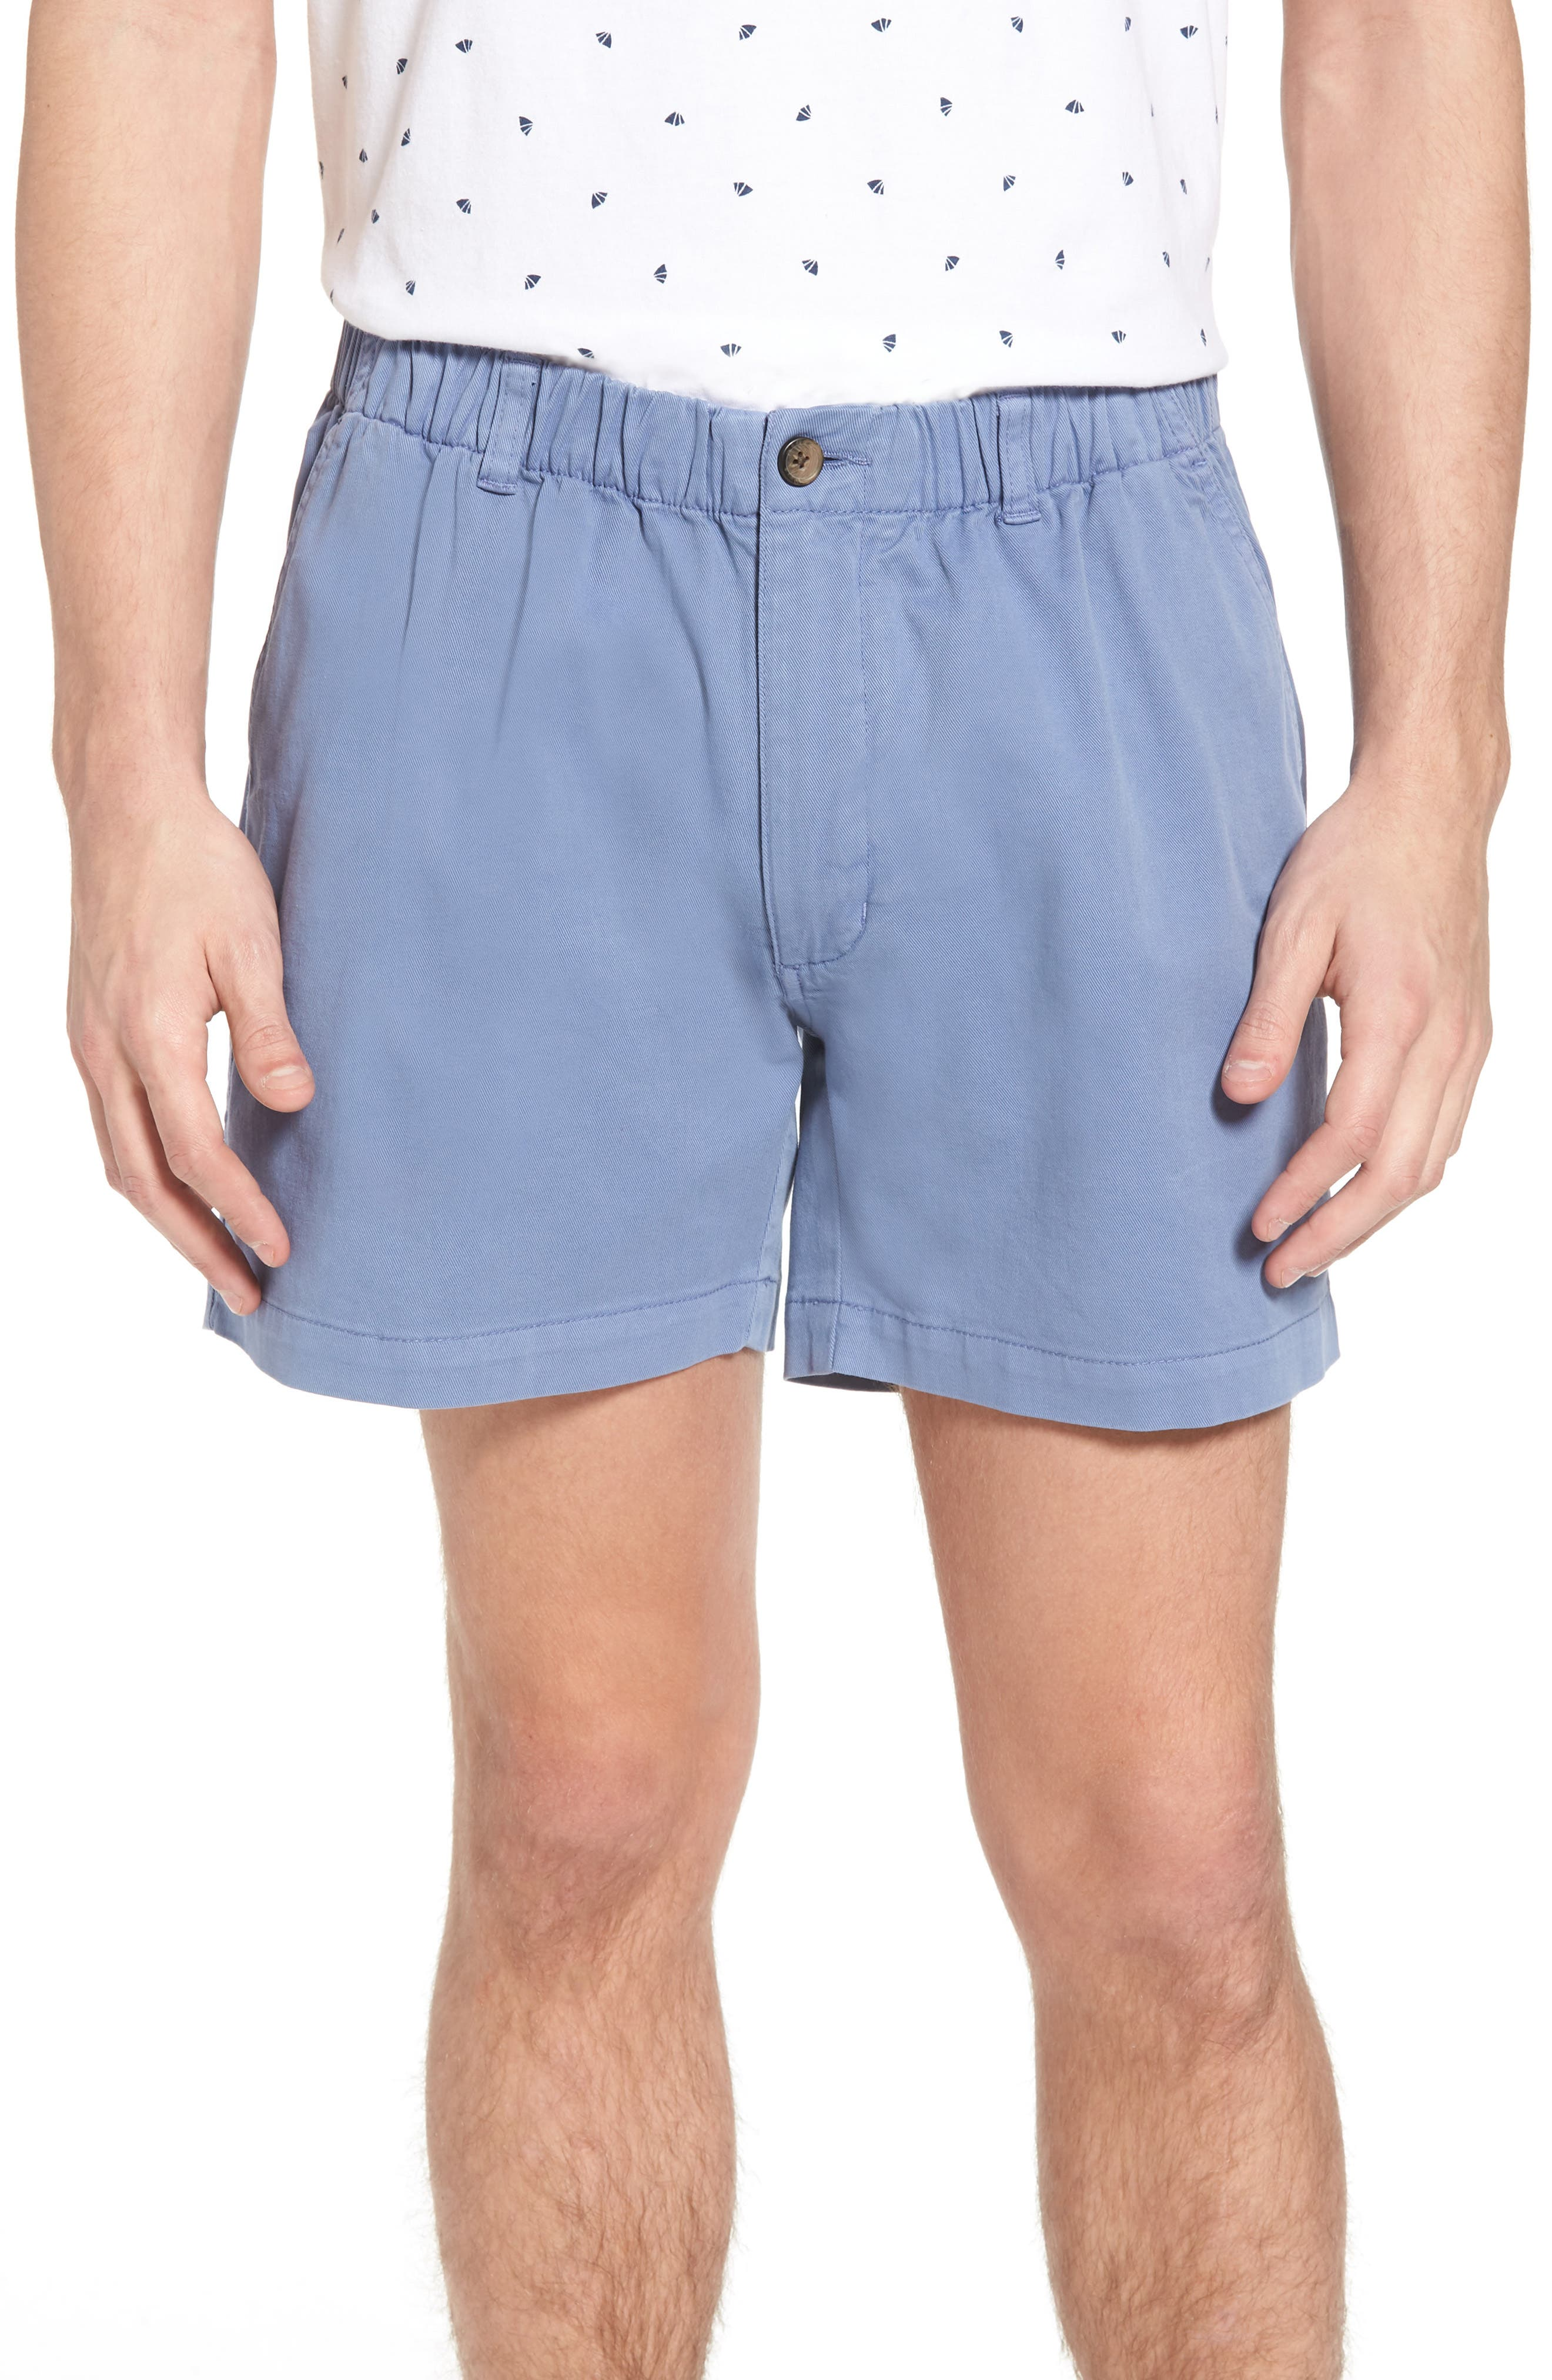 Vintage Men's Swimsuits – 1930s to 1970s History Mens Vintage 1946 Snappers Elastic Waist 5.5 Inch Stretch Shorts Size XX-Large - Blue $55.00 AT vintagedancer.com